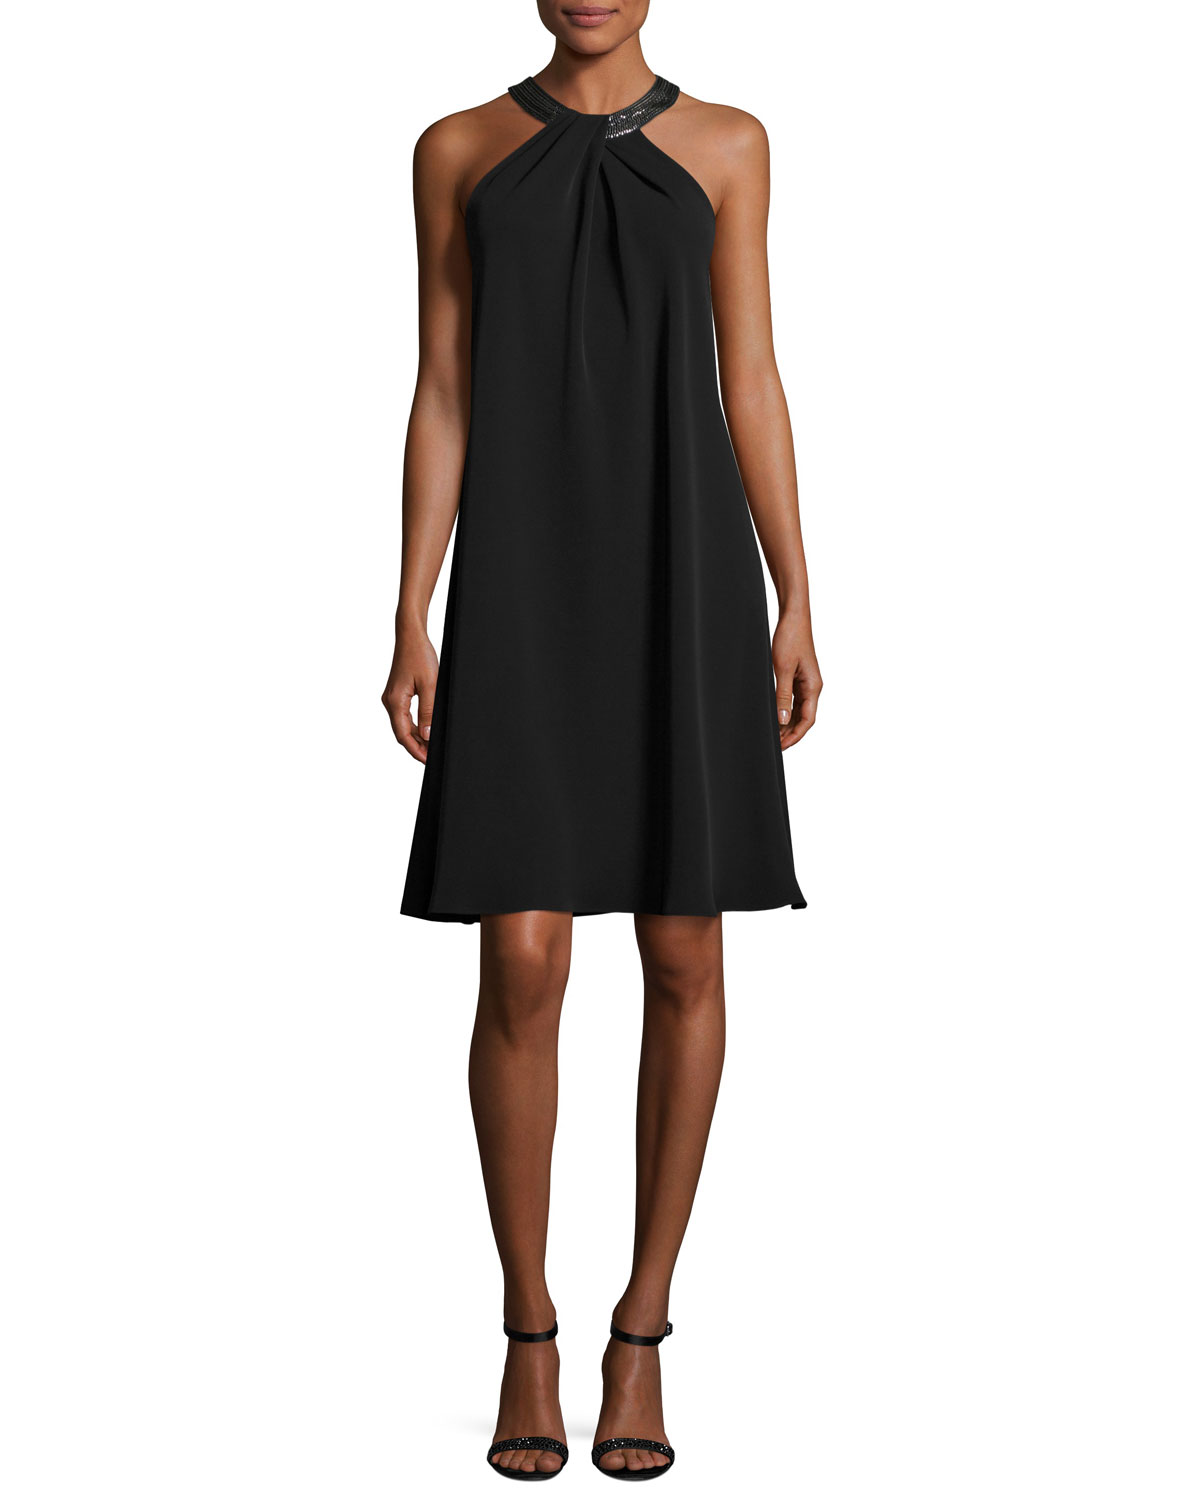 Sleeveless Chiffon Cocktail Dress, Black